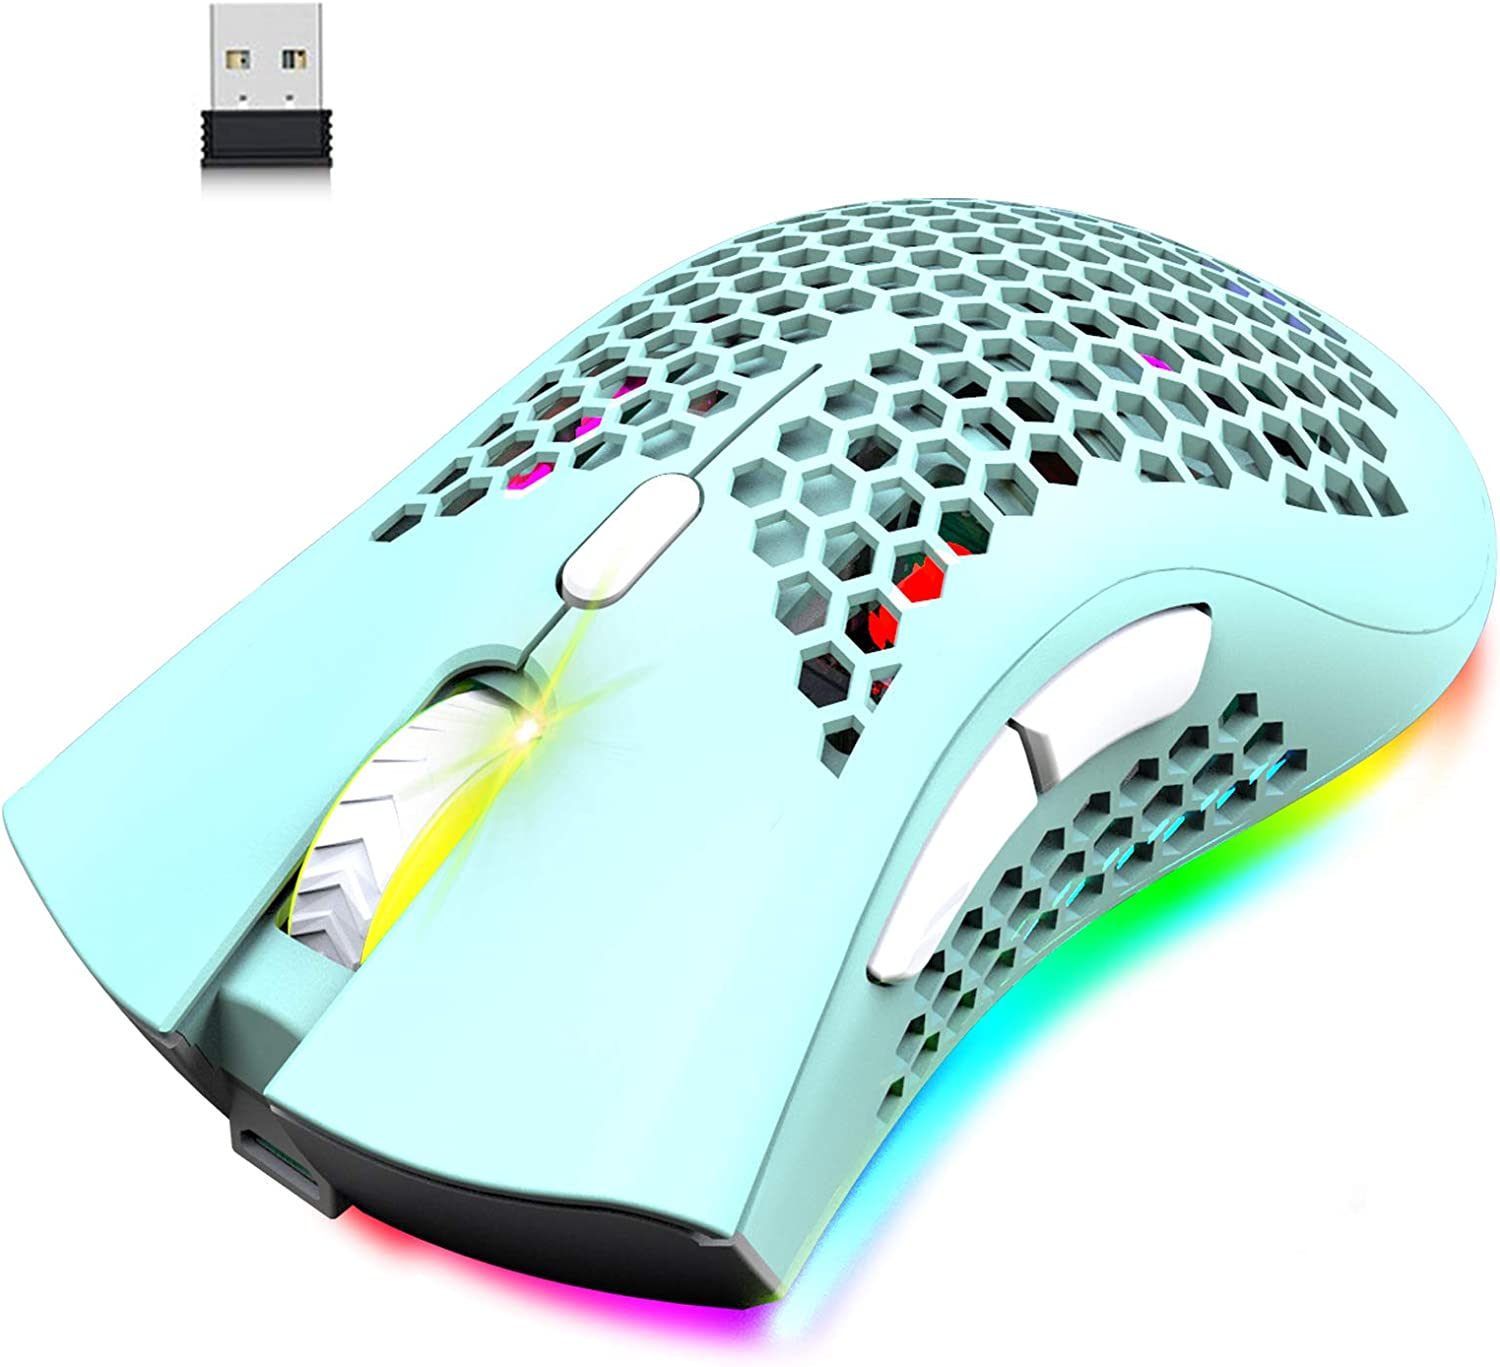 Wireless Lightweight Gaming Mouse Honeycomb with 7 Button Multi RGB Backlit Perforated Ergonomic Shell Optical Sensor Adjustable DPI Rechargeable 800 mAh Battery USB Receiver for PC Mac Gamer(Green)